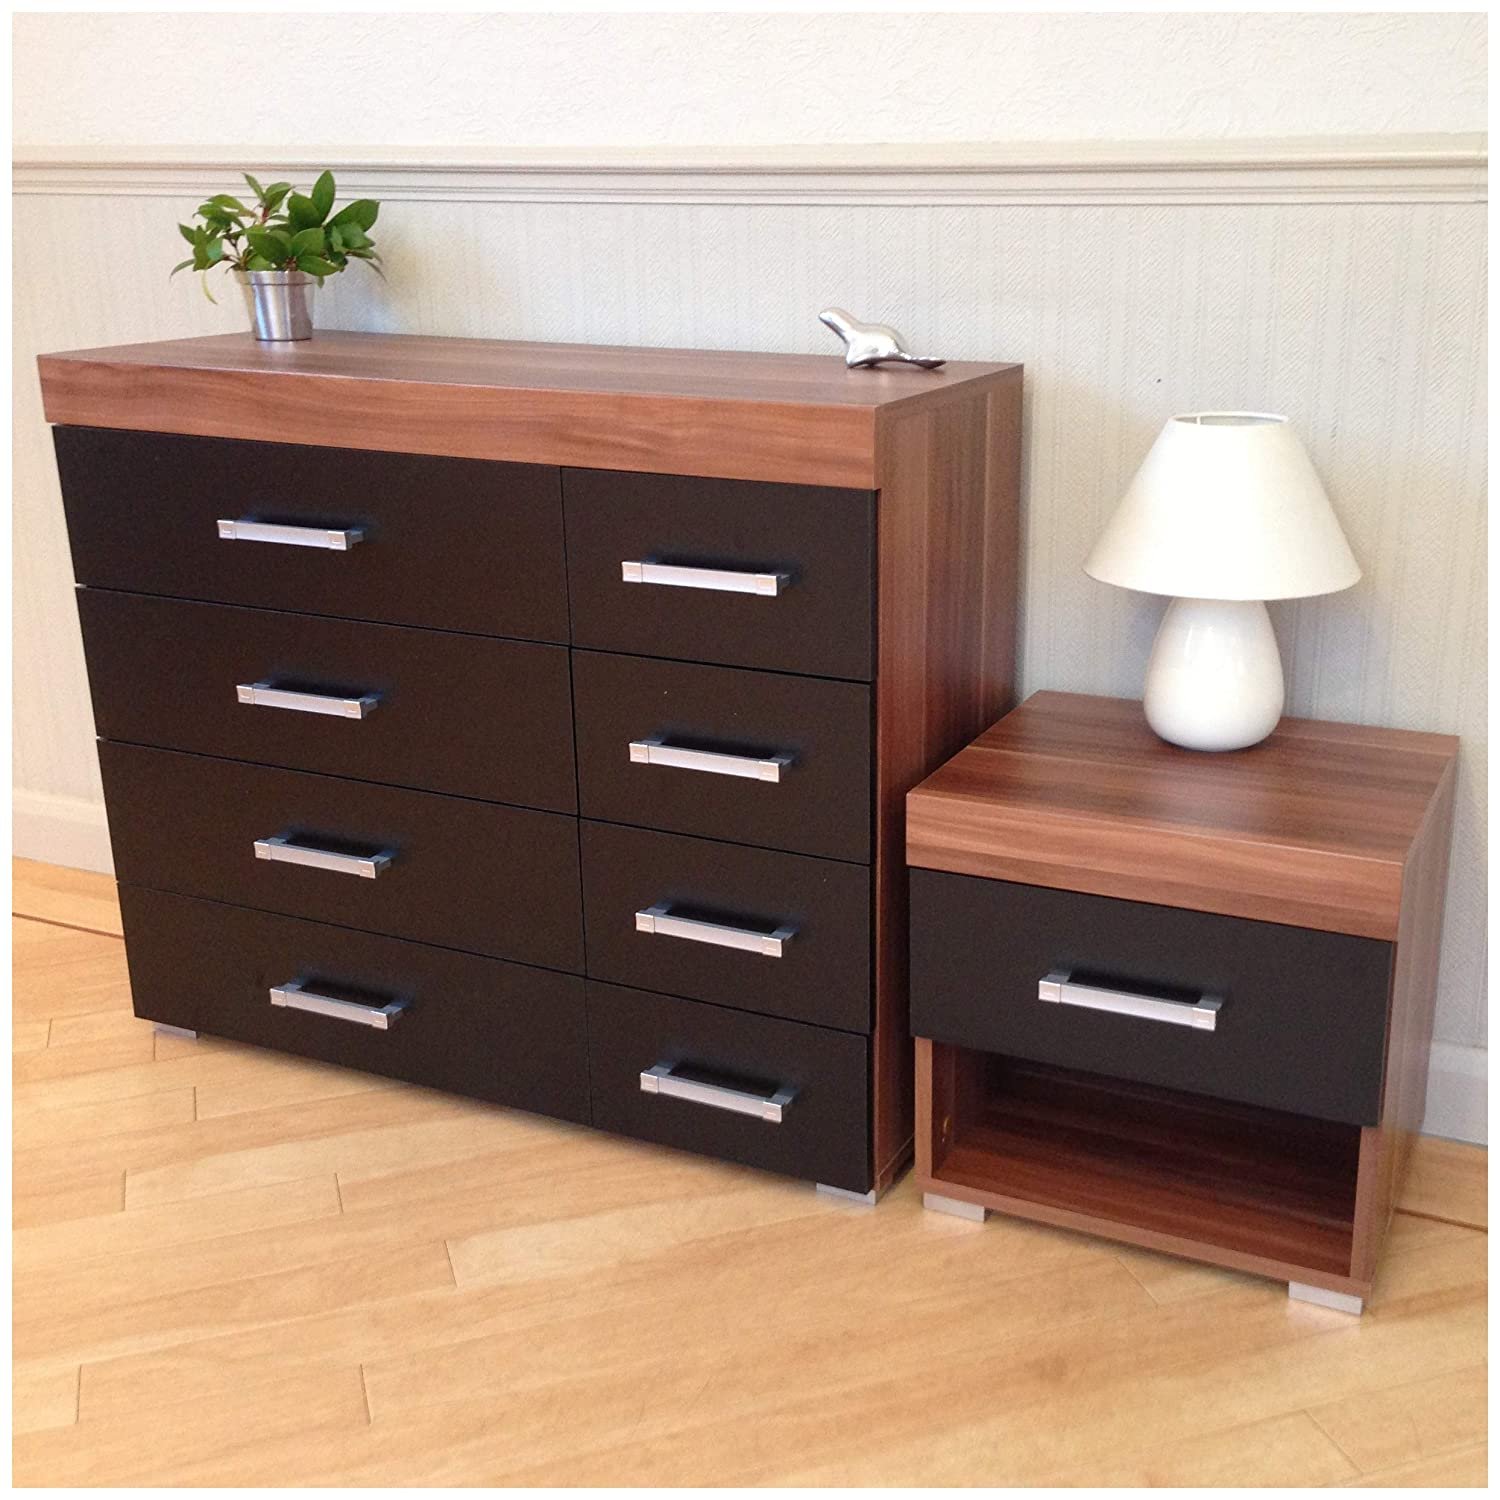 Chest of 4+4 Drawers & 1 Bedside Table in Black & Walnut Bedroom Furniture 8 Draws DRP Trading